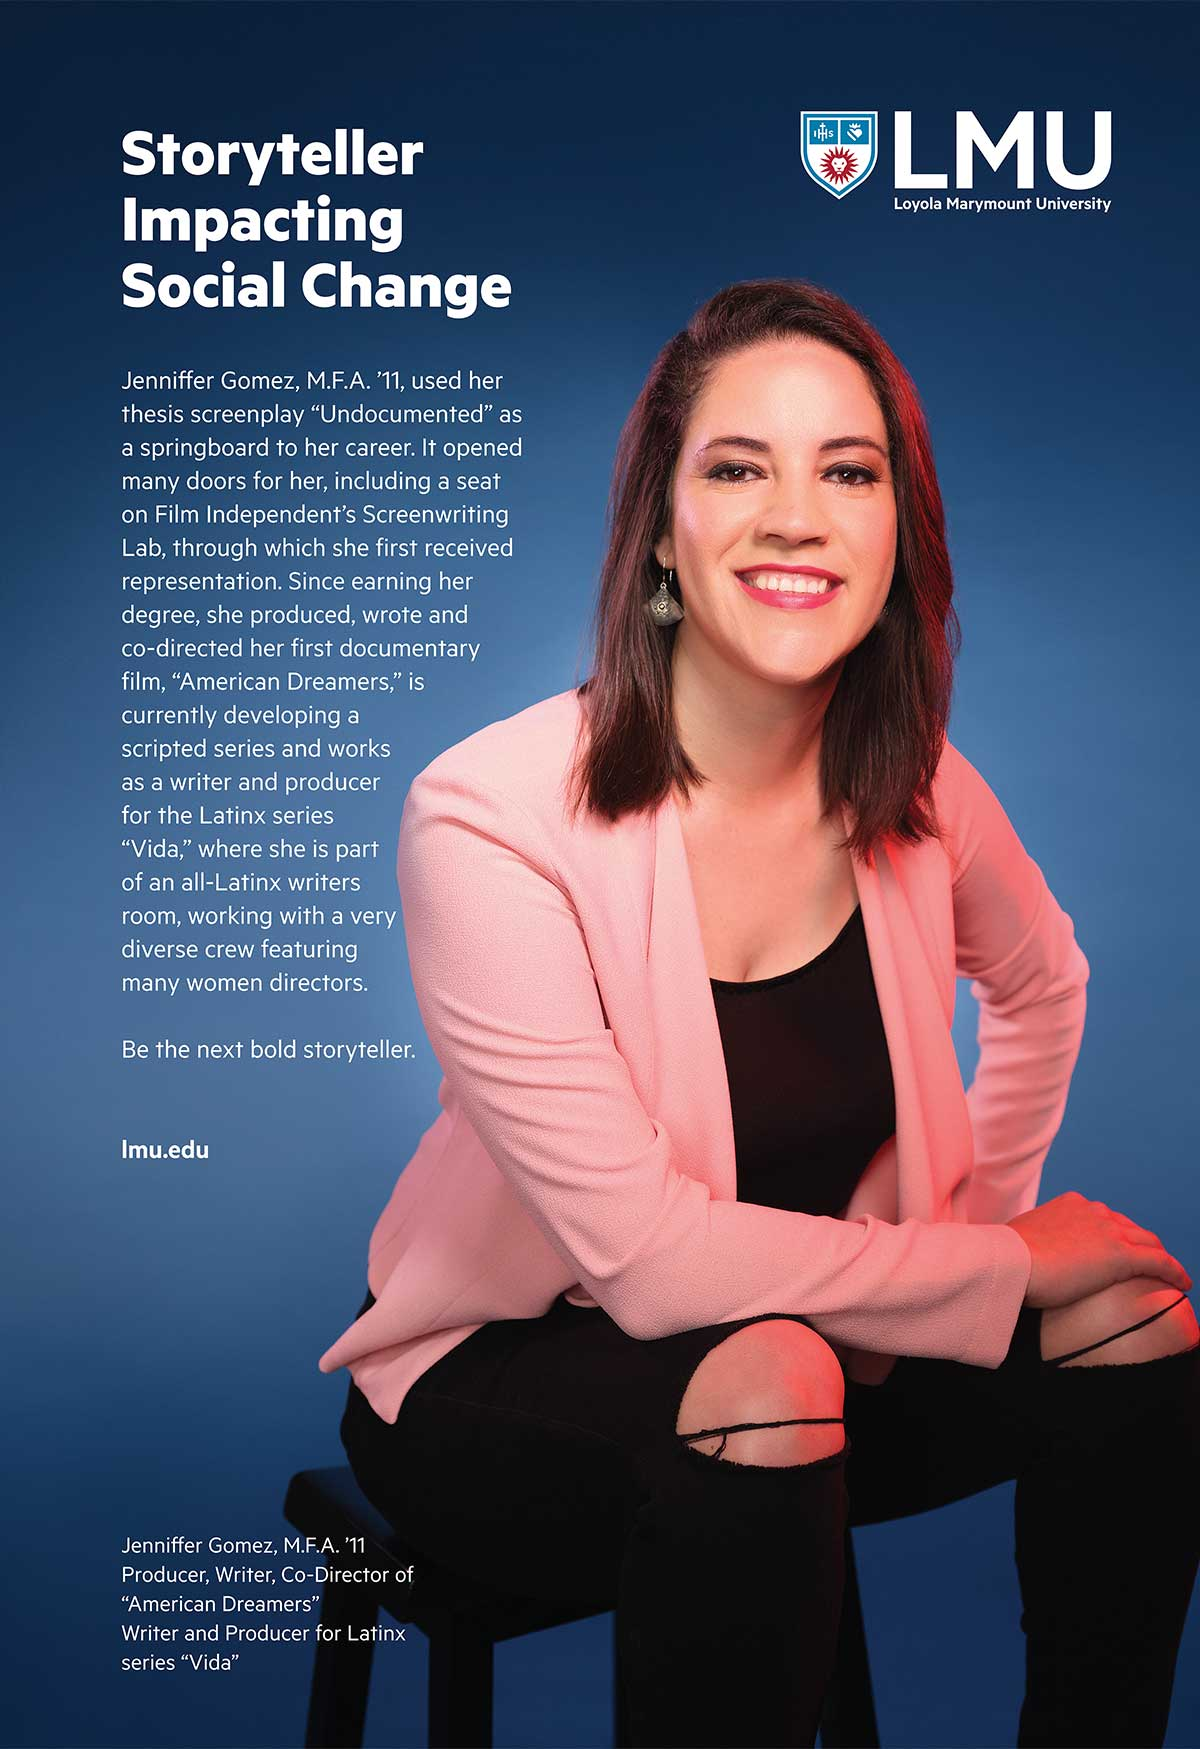 Advertisement featuring Jennifer Gomez with the words Storyteller Impacting Social Change